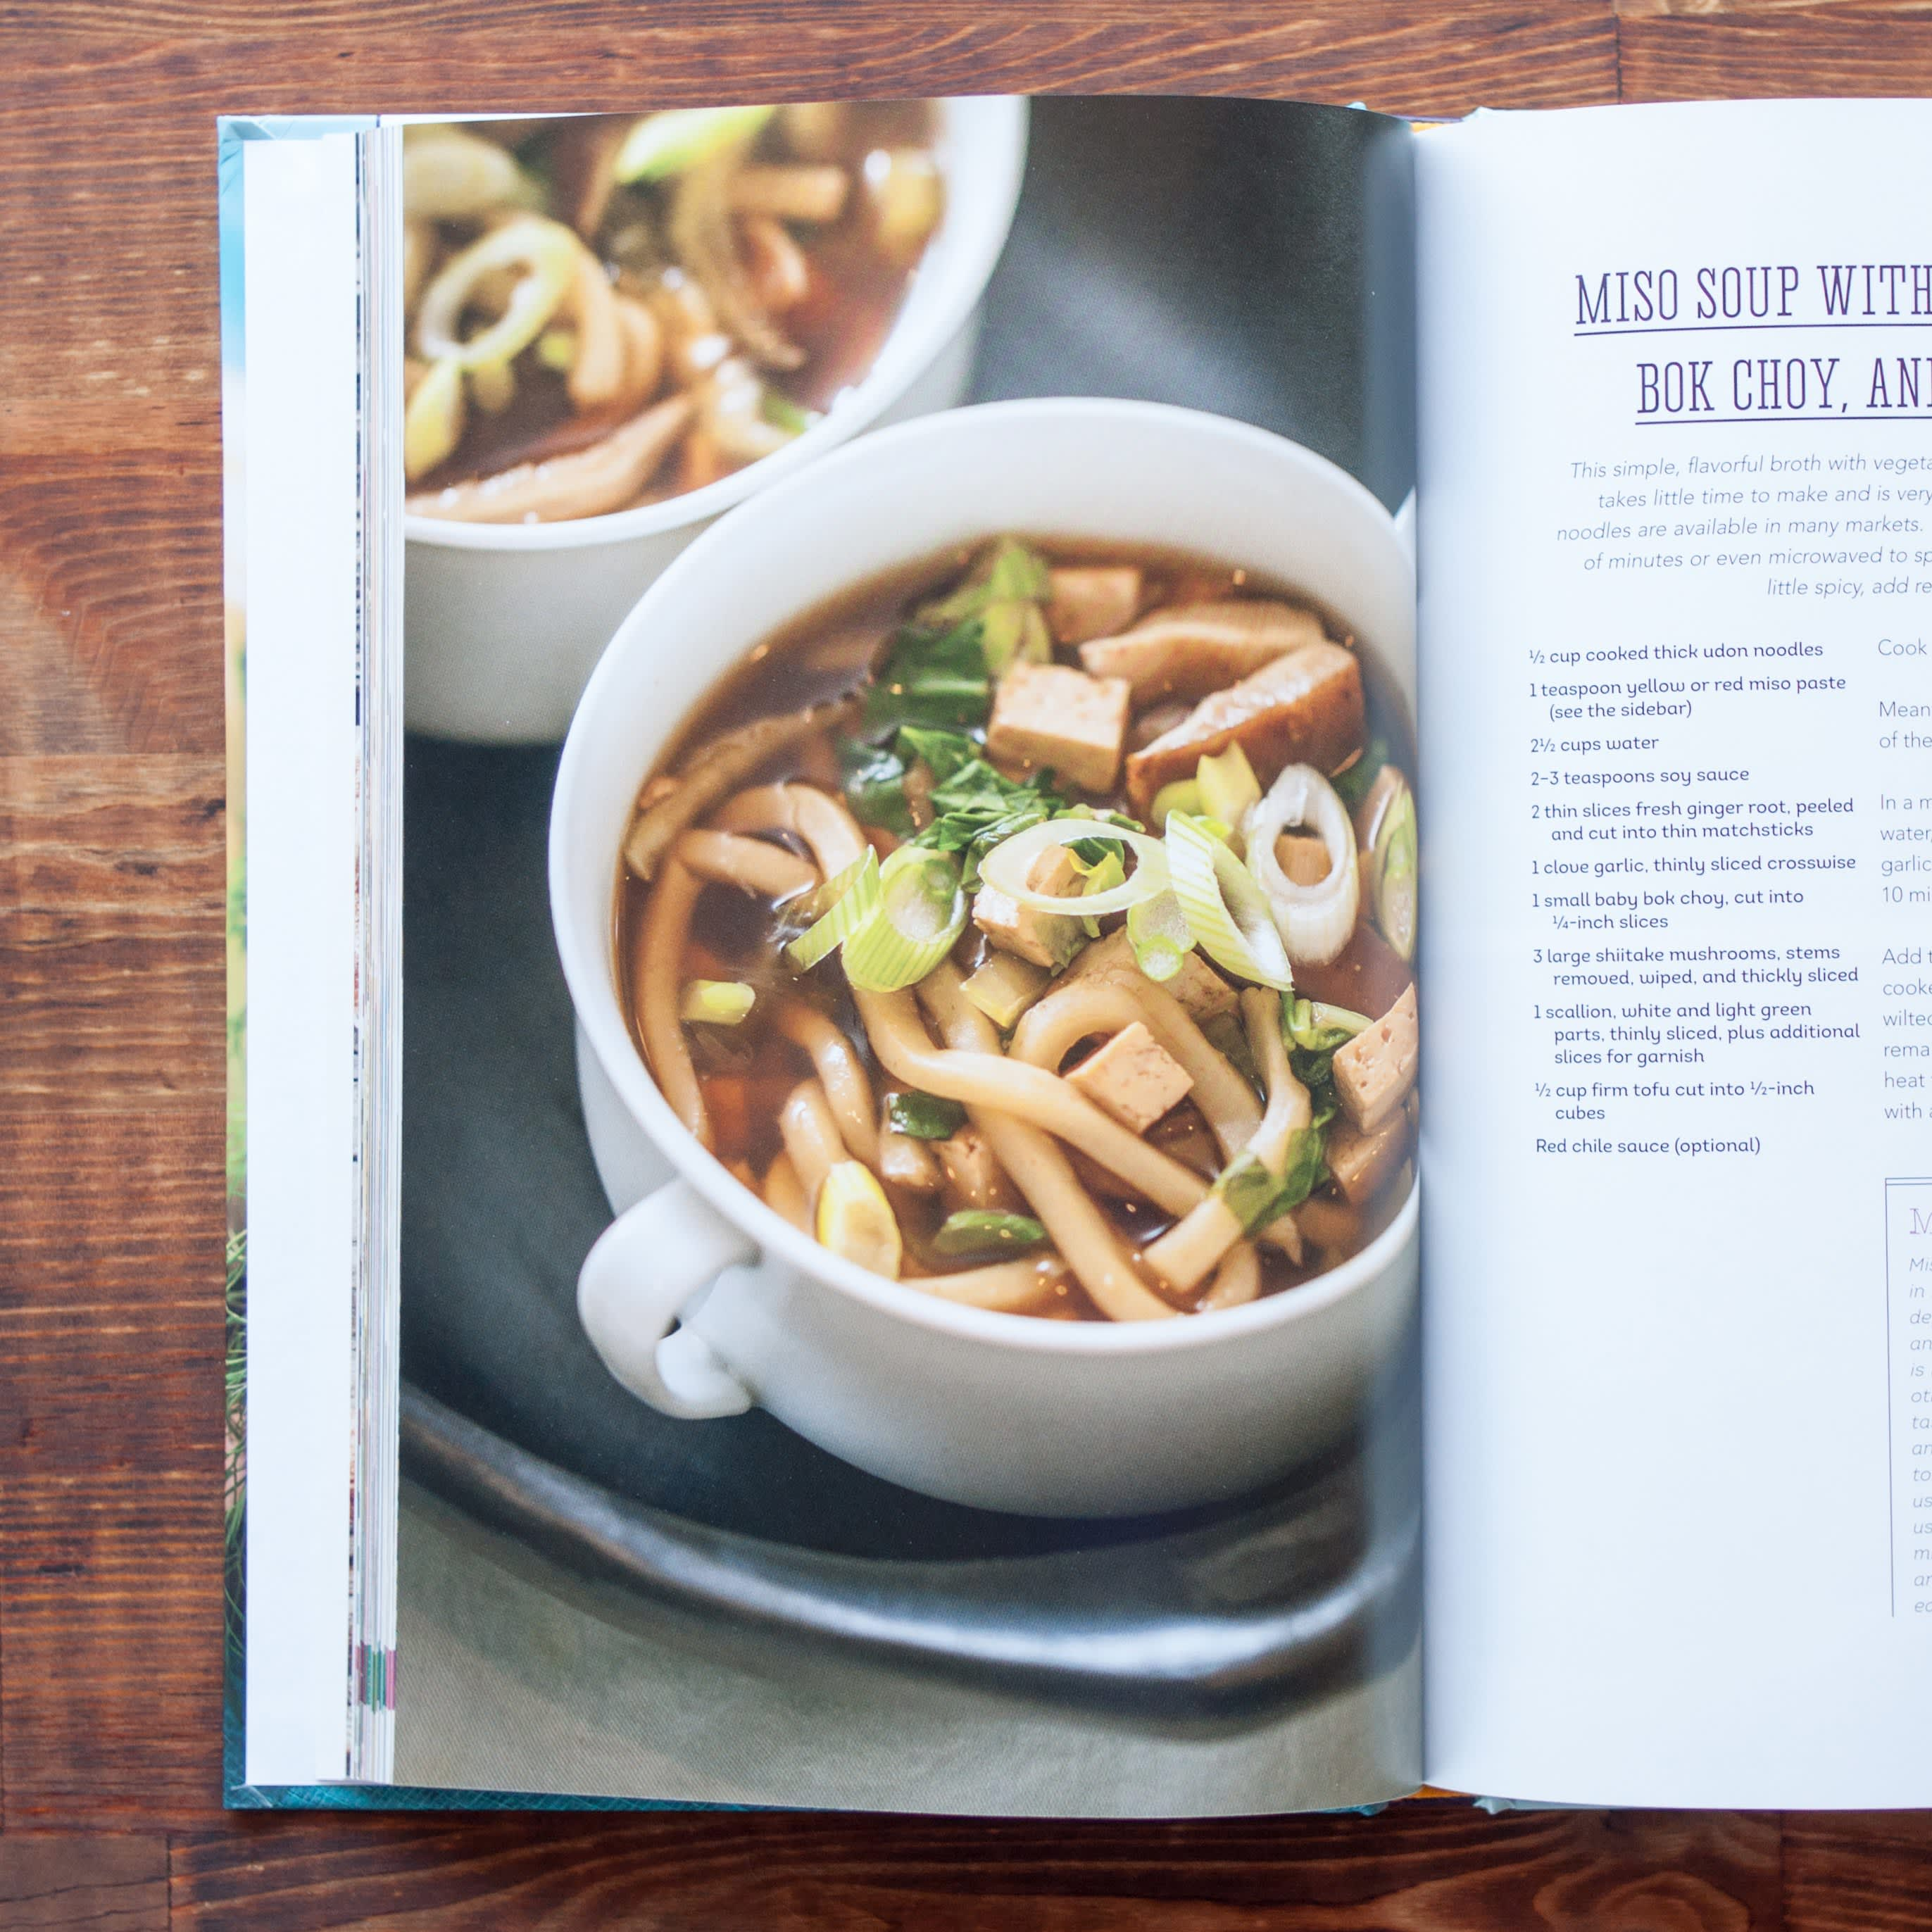 This Cookbook Has Downsized Soups Perfectly for Small Households!: gallery image 5